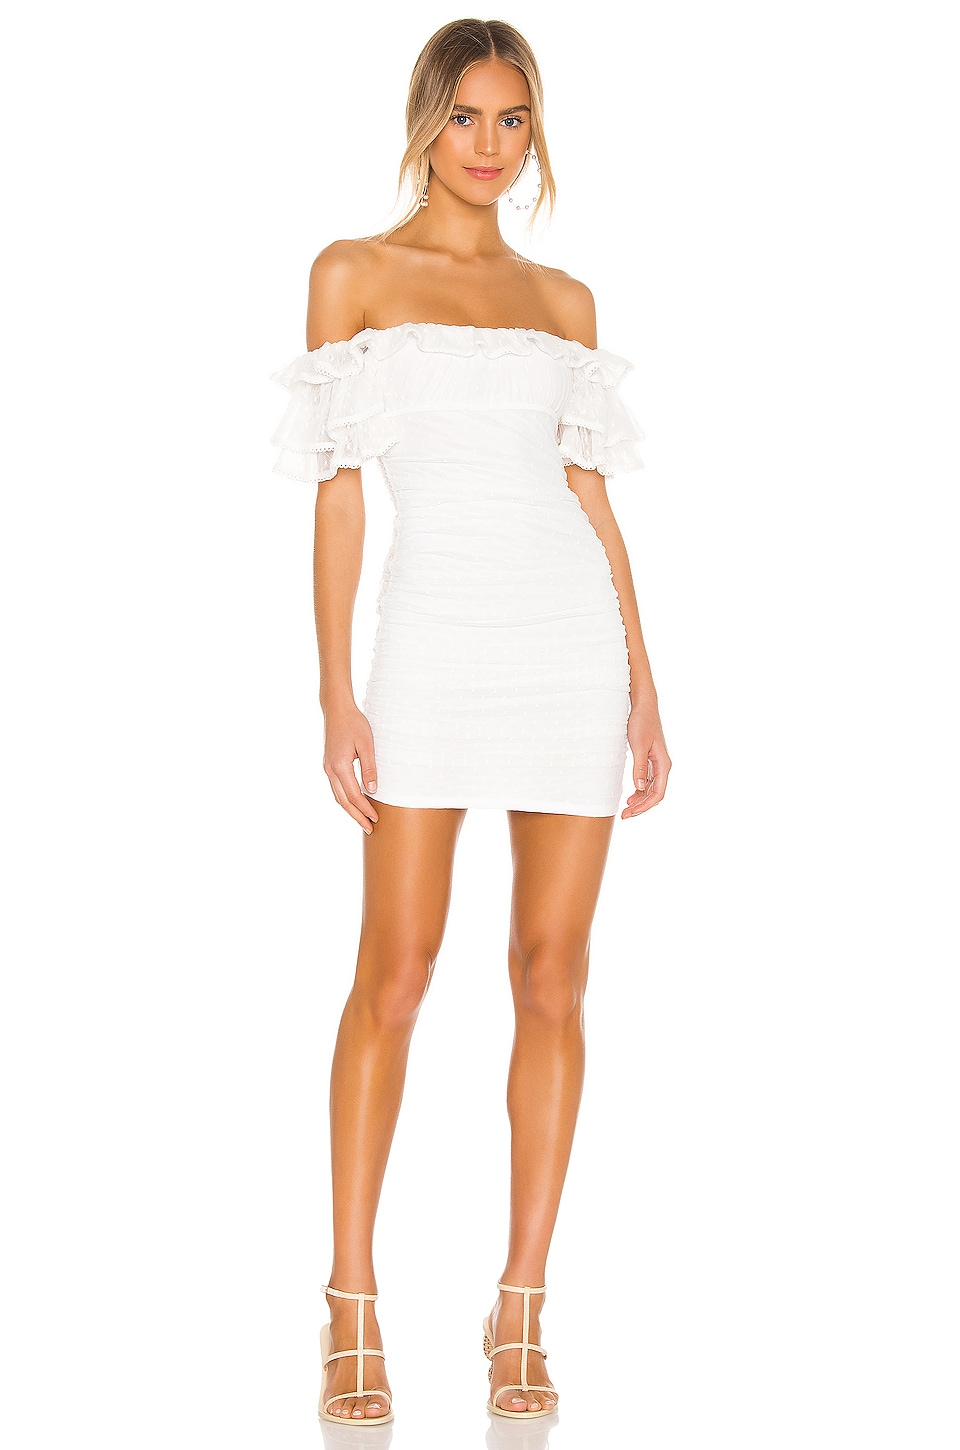 Eva Mini Dress             Camila Coelho                                                                                                       CA$ 300.48 8